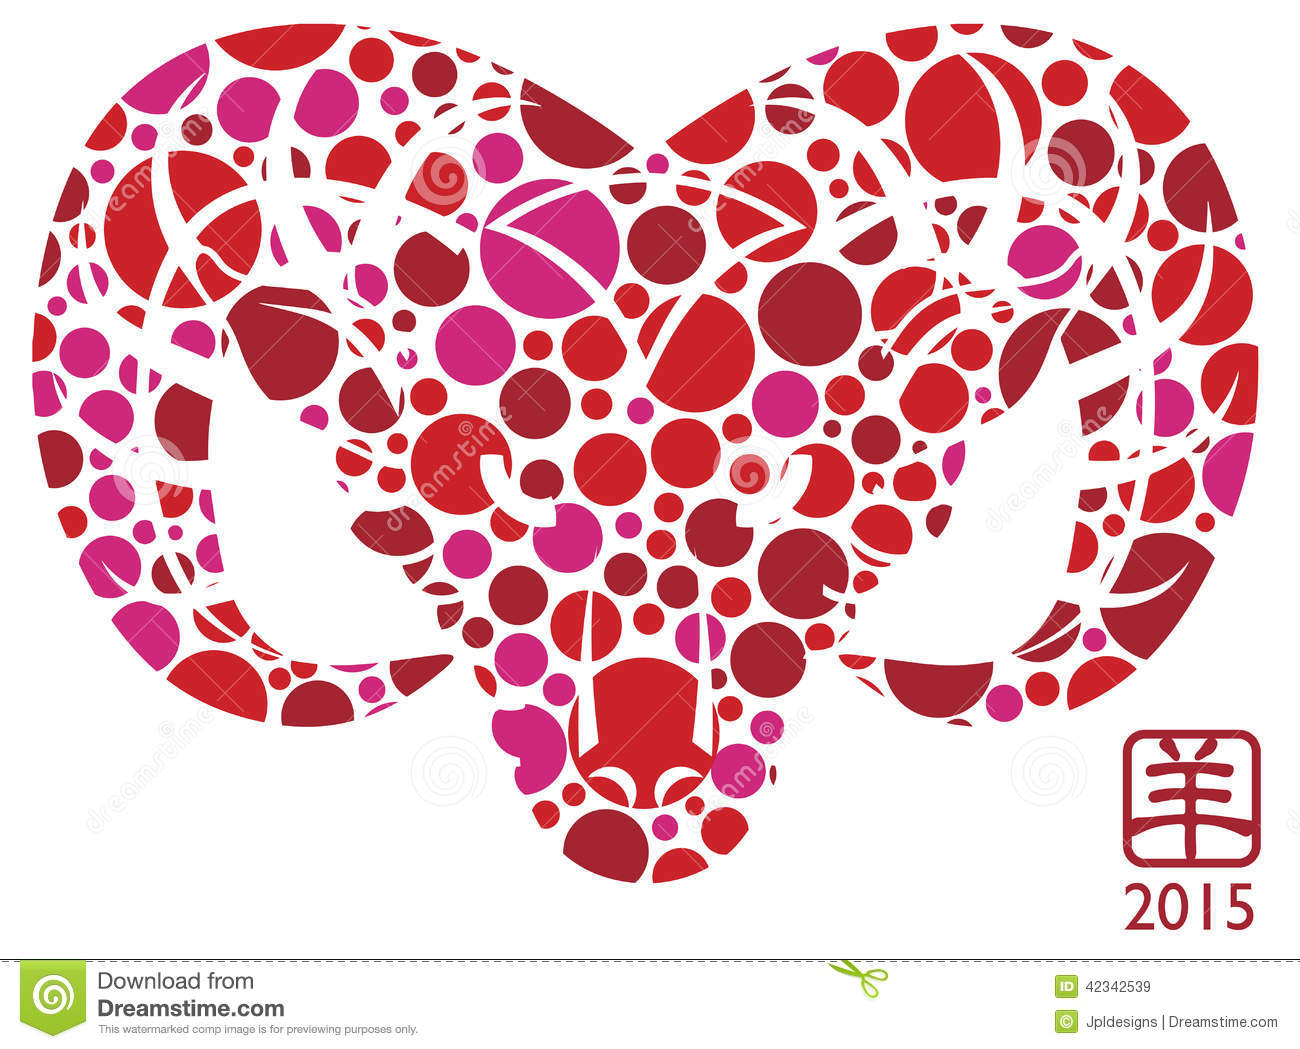 2015 lunar new year animal 2015 year of the goat polka dots stock vector image - 2015 Chinese New Year Animal